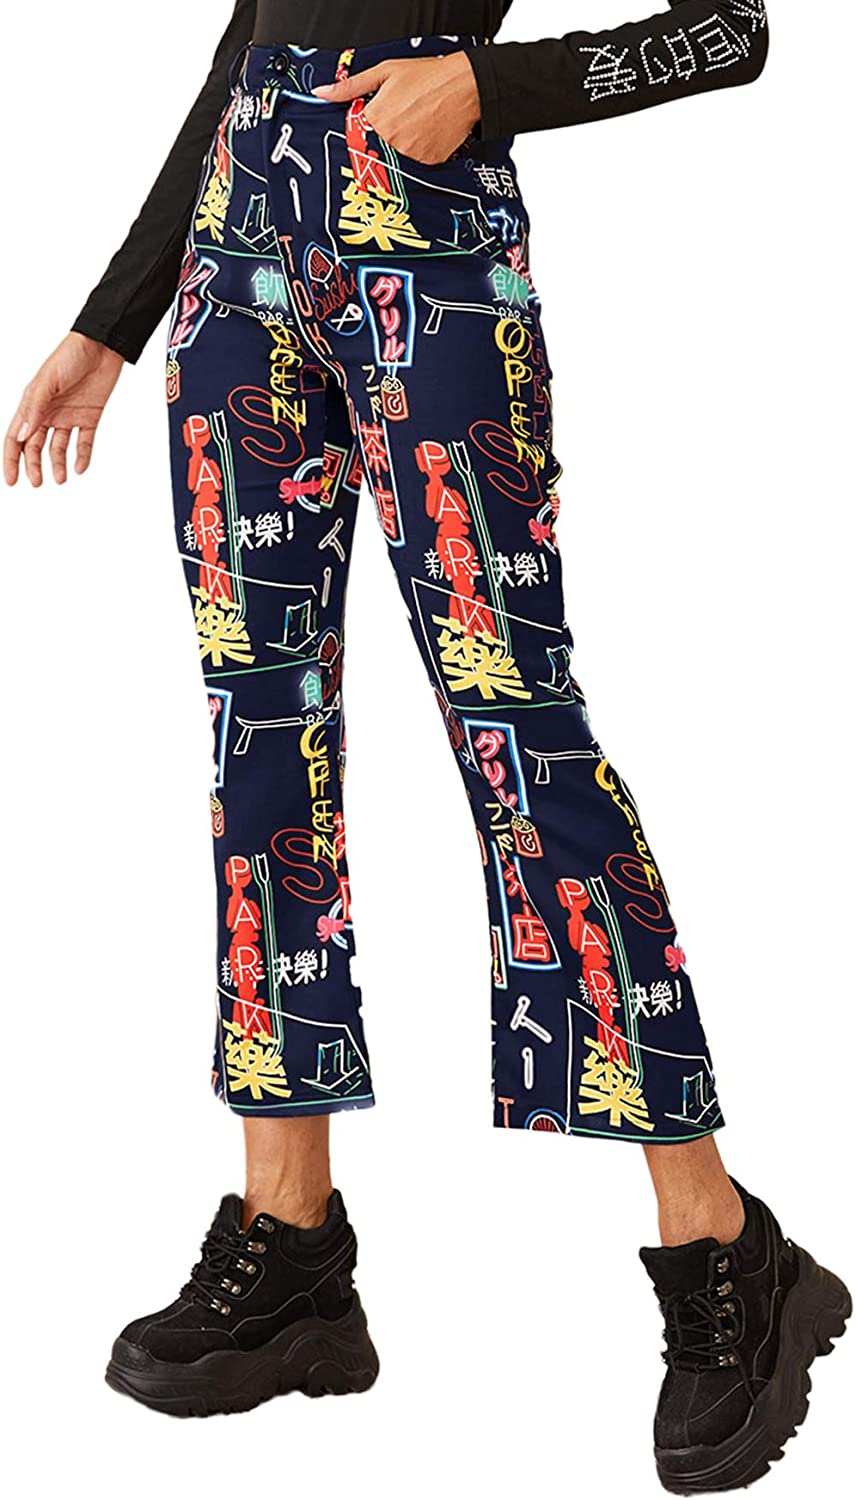 WDIRARA Women's Graphic Print Mid Waist Flare Leg Pants Casual Cropped Trousers Multicolor S